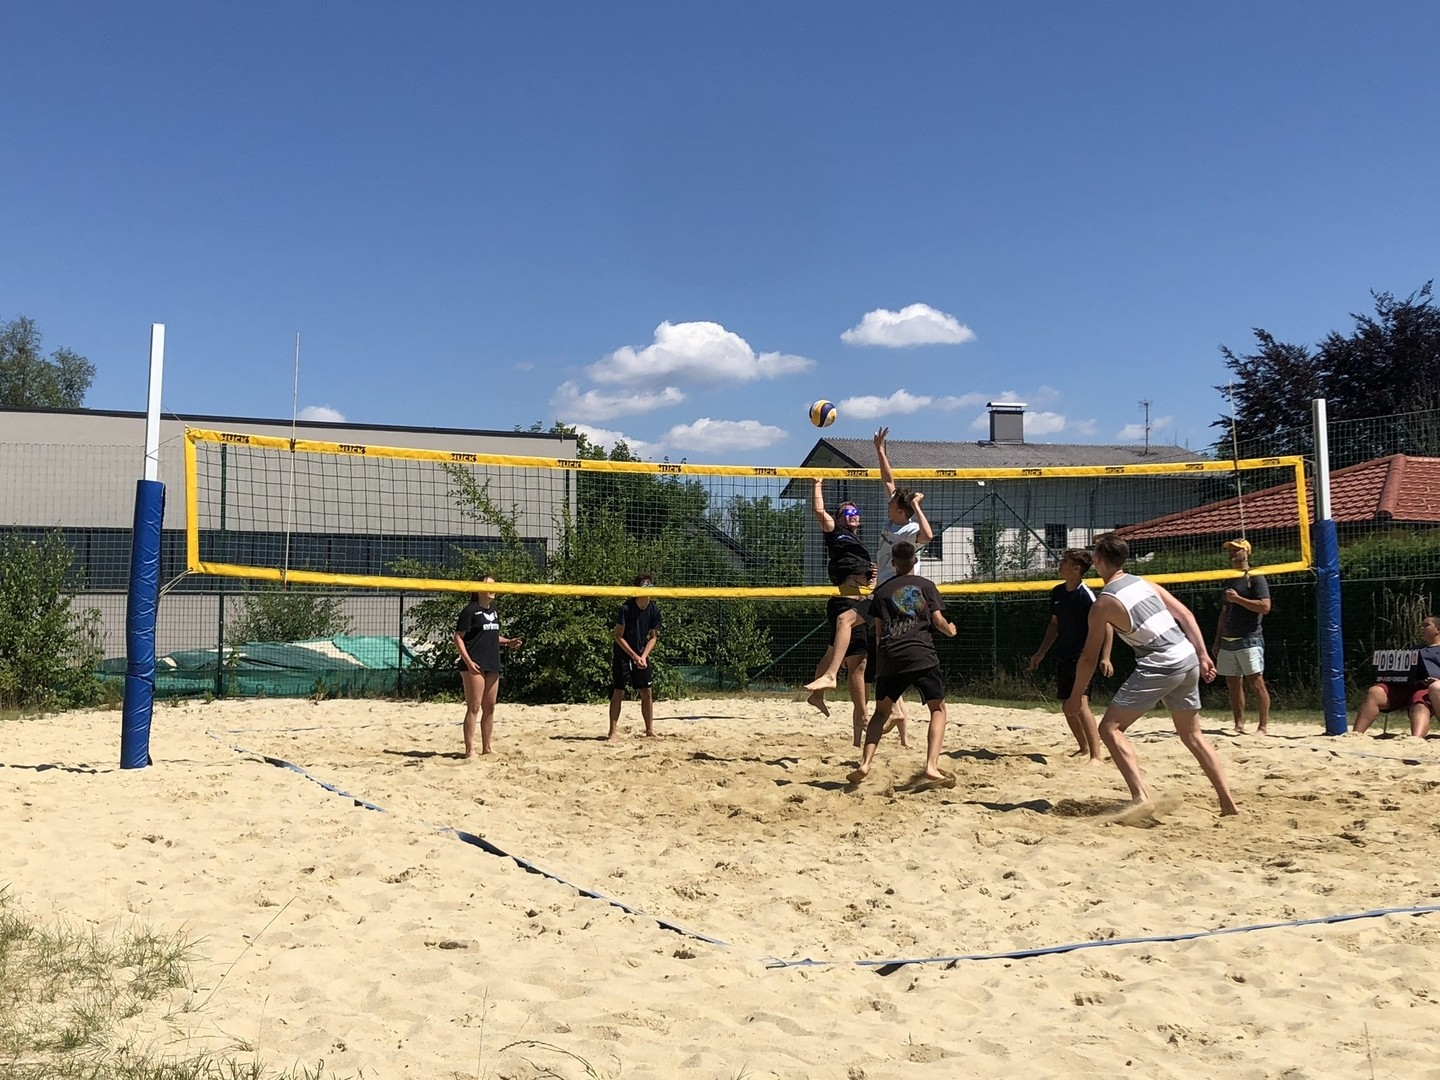 Beachvolleyball Turnier--Bild-Nr. 4